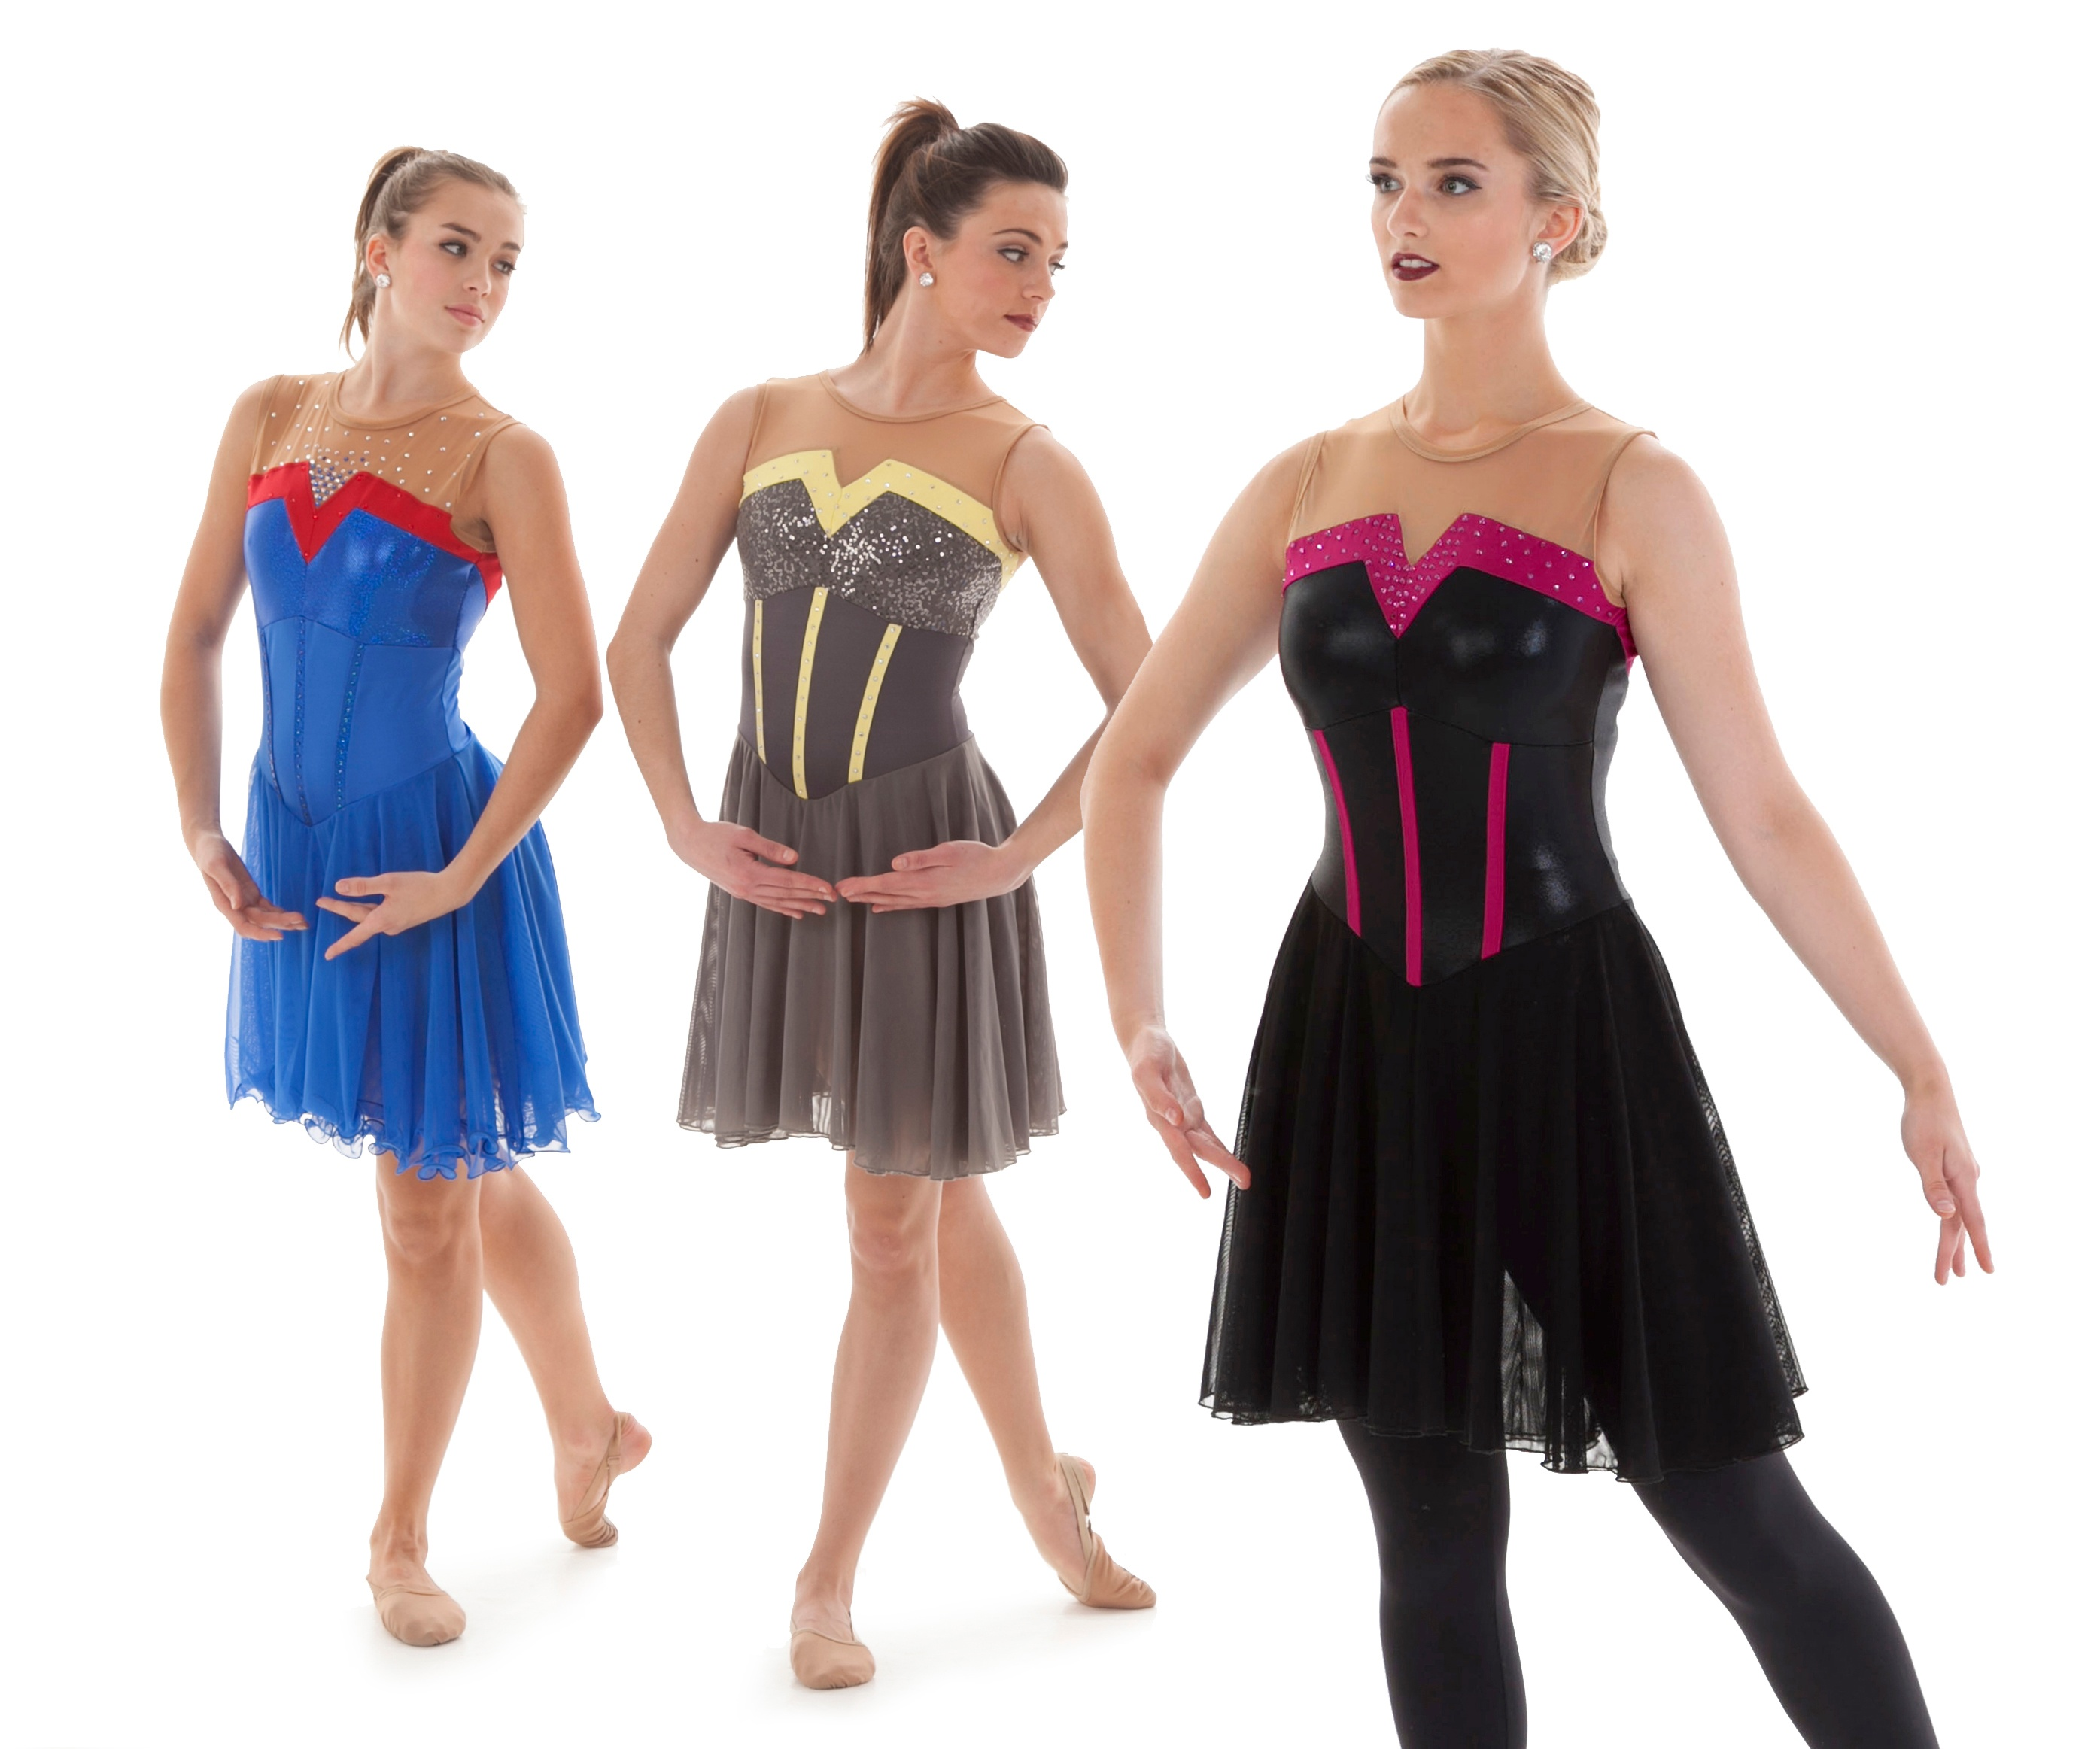 Giana Synchronized Skate Competition Dress